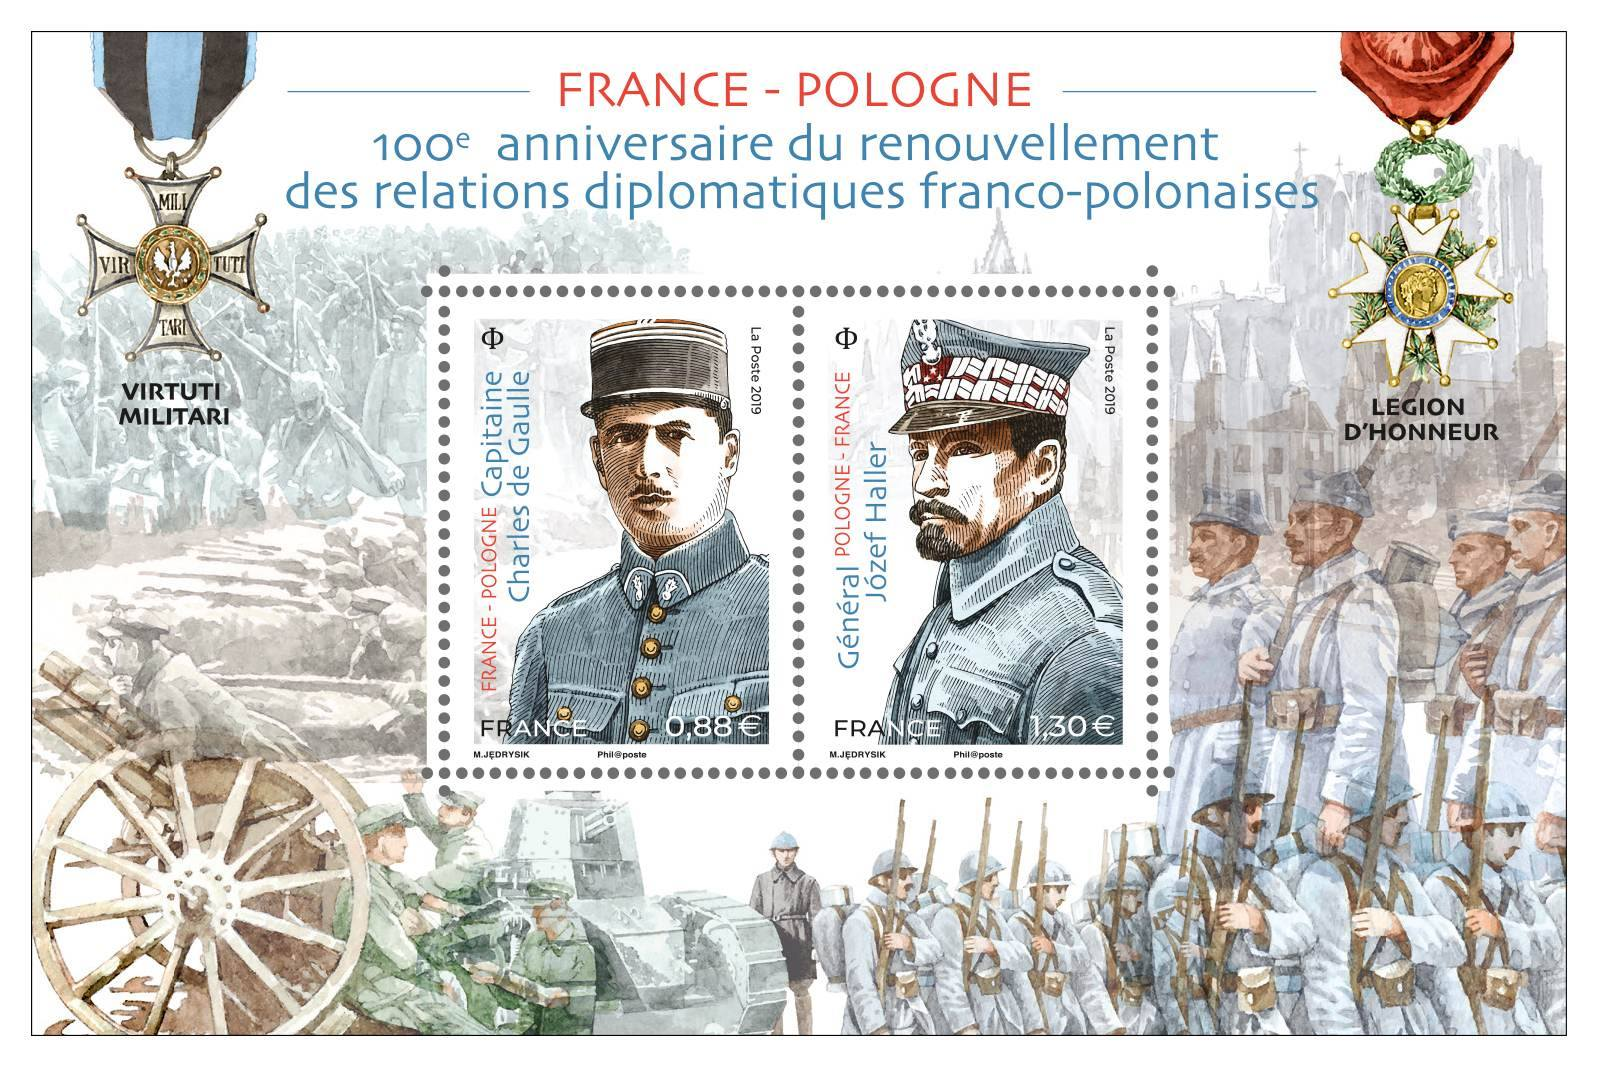 France - 100th Anniversary of French-Polish Diplomatic Relations (April 2, 2019) souvenir sheet of 2